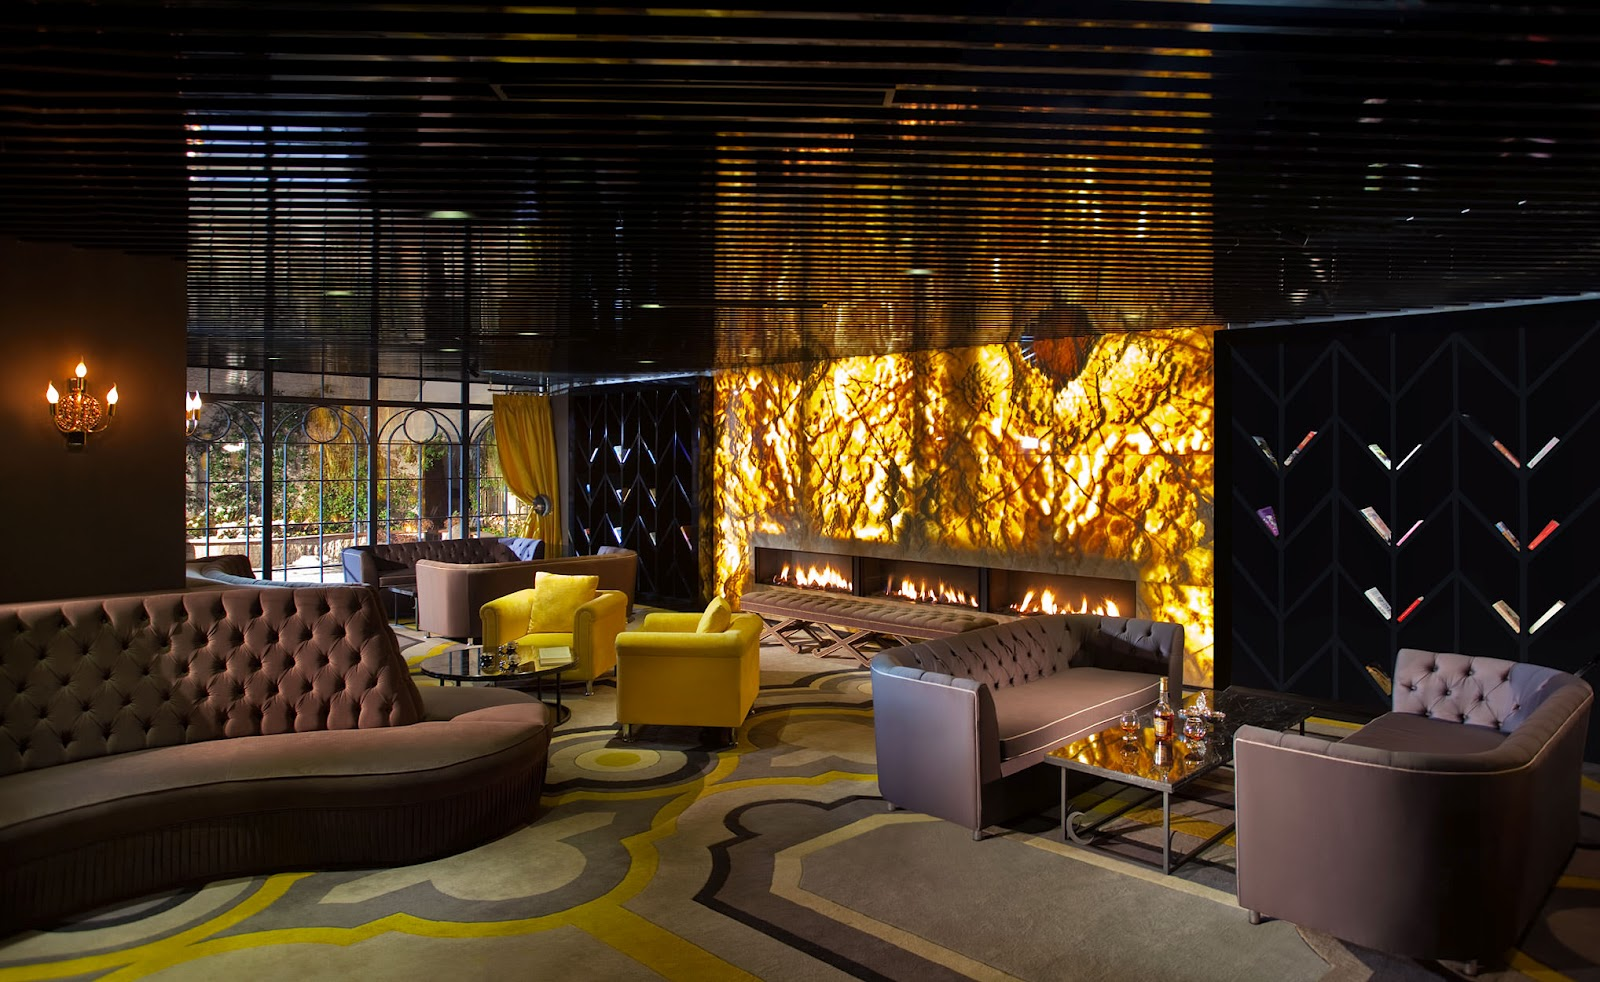 Loveisspeed sura hotel stanbul for Hotel istanbul design